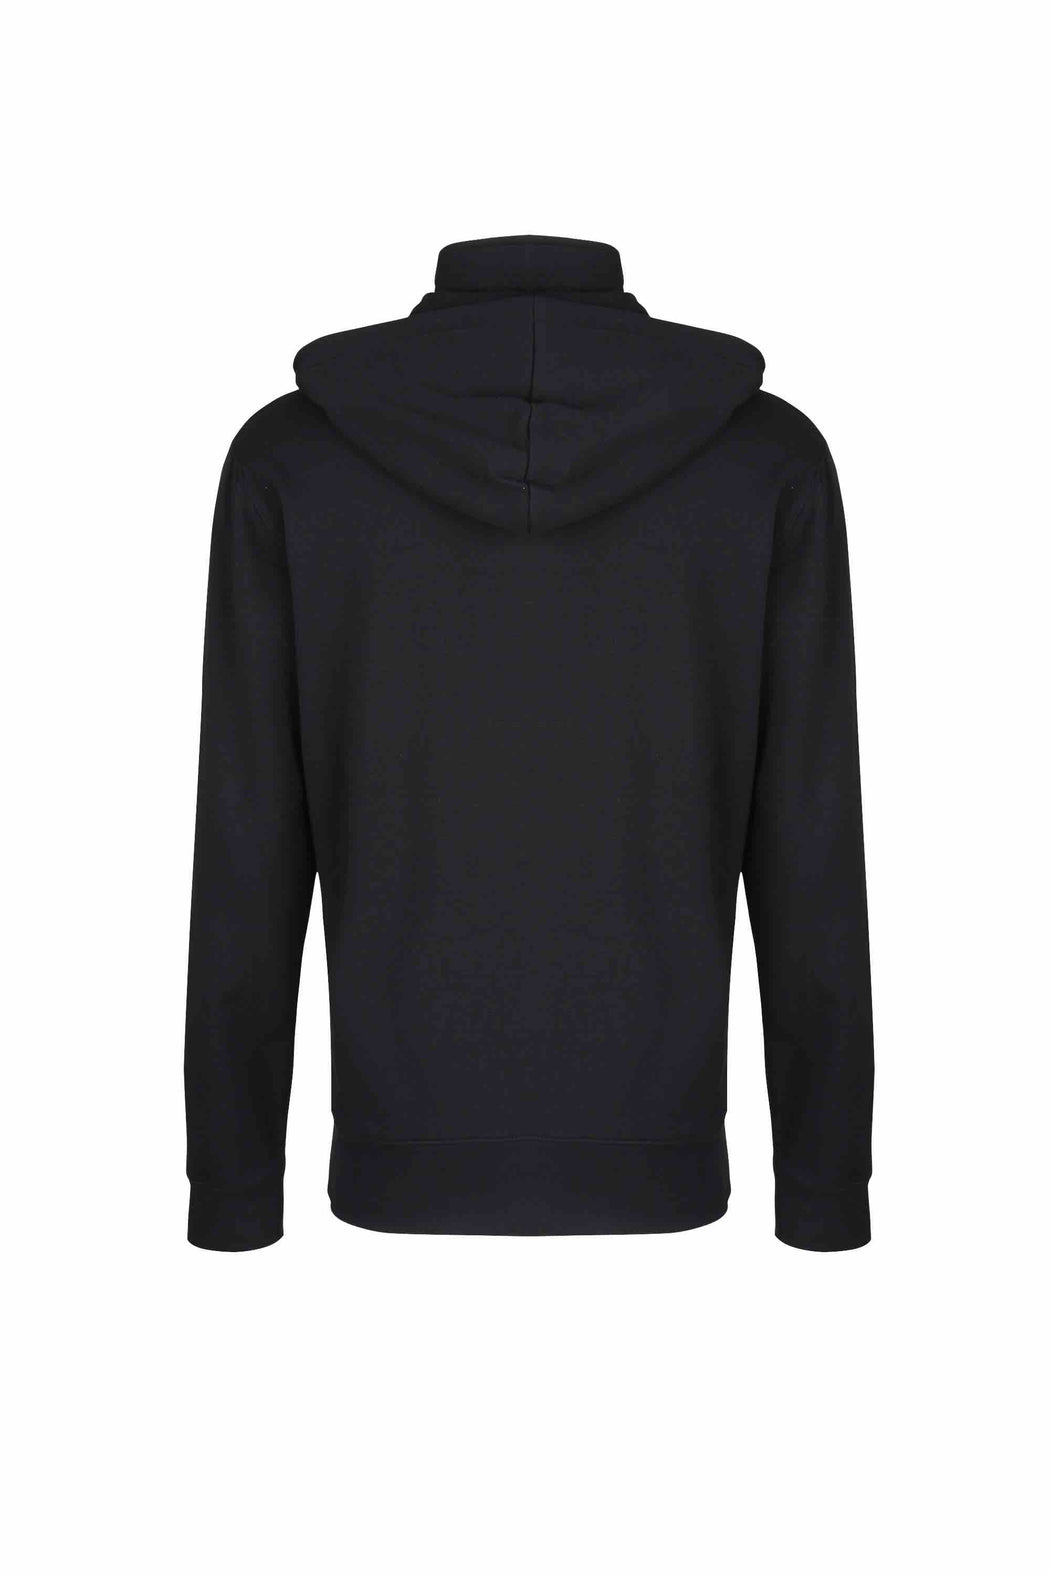 Back view of Men Pullover Hoodie Turtleneck, made with organic cotton in Black